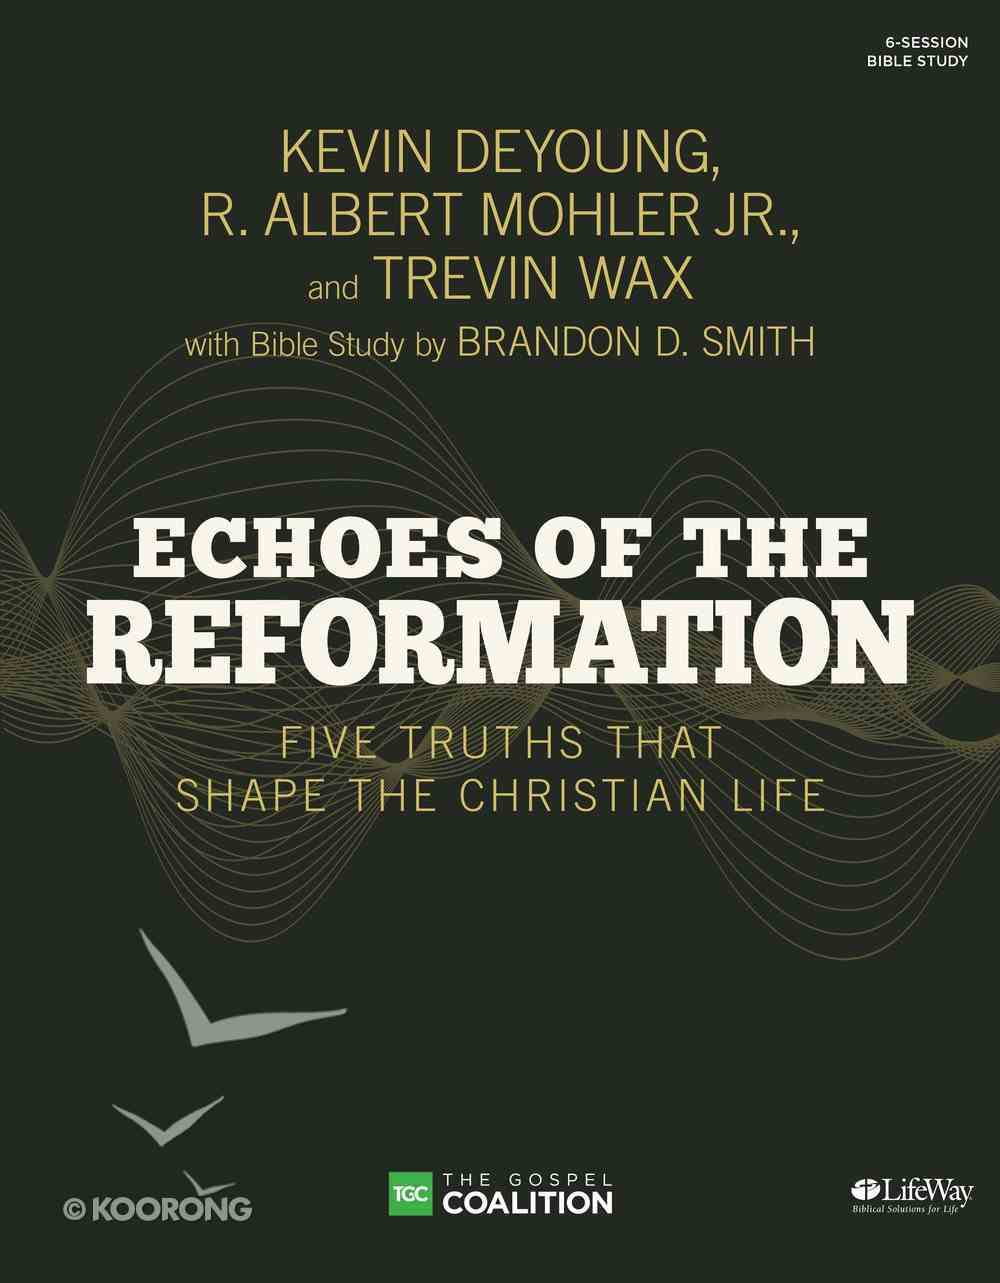 Echoes of the Reformations: Five Truths That Shape the Christian Life (Bible Study Book) Paperback